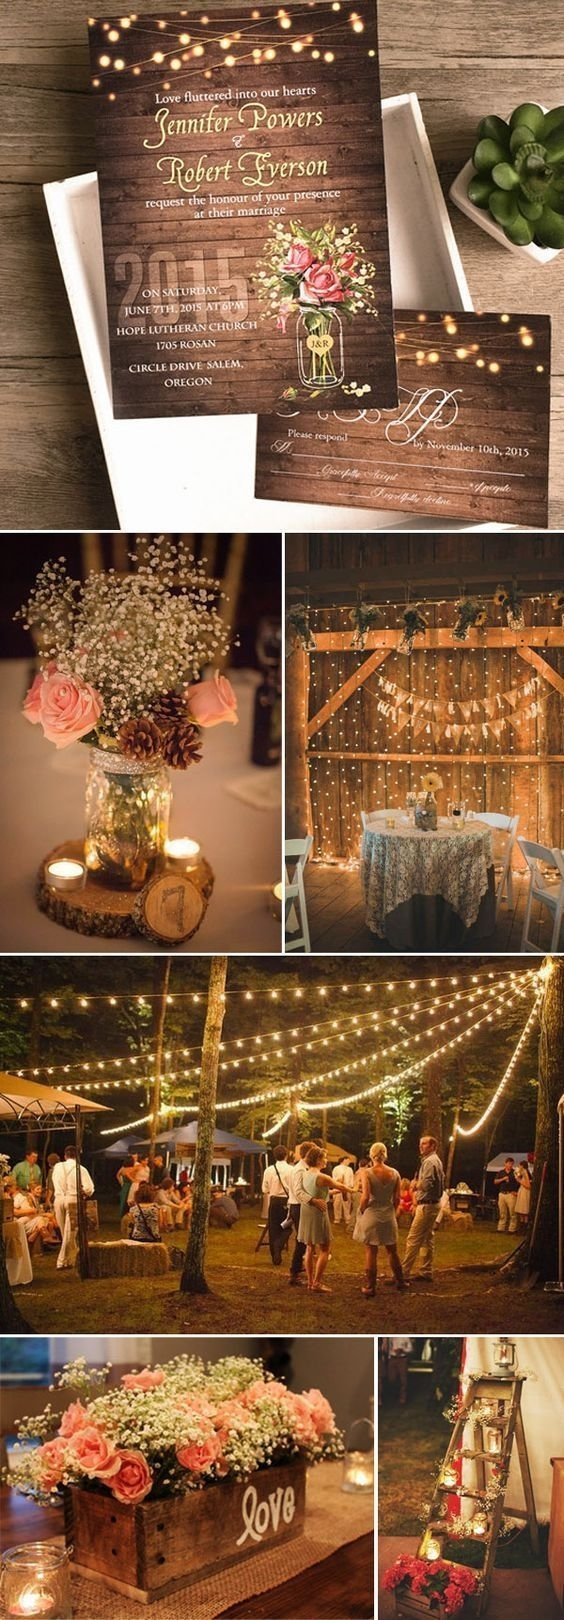 10 Lovely Country Wedding Ideas For Summer rustic wedding colors best photos rustic wedding colors weddings 2020